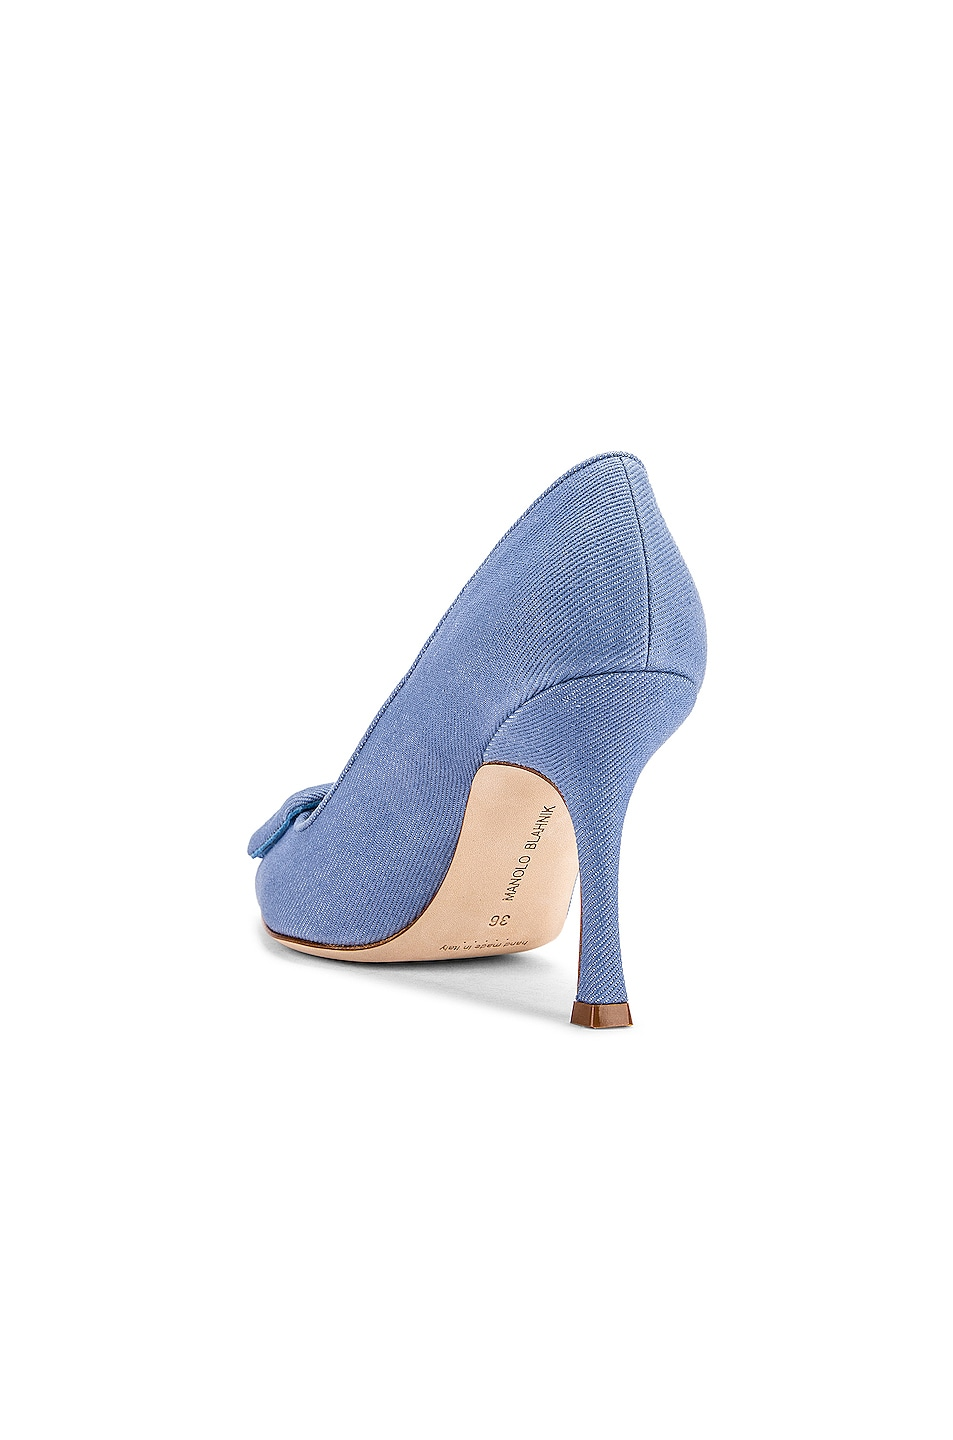 Image 3 of Manolo Blahnik Maysale 90 Pump in Light Blue Jean